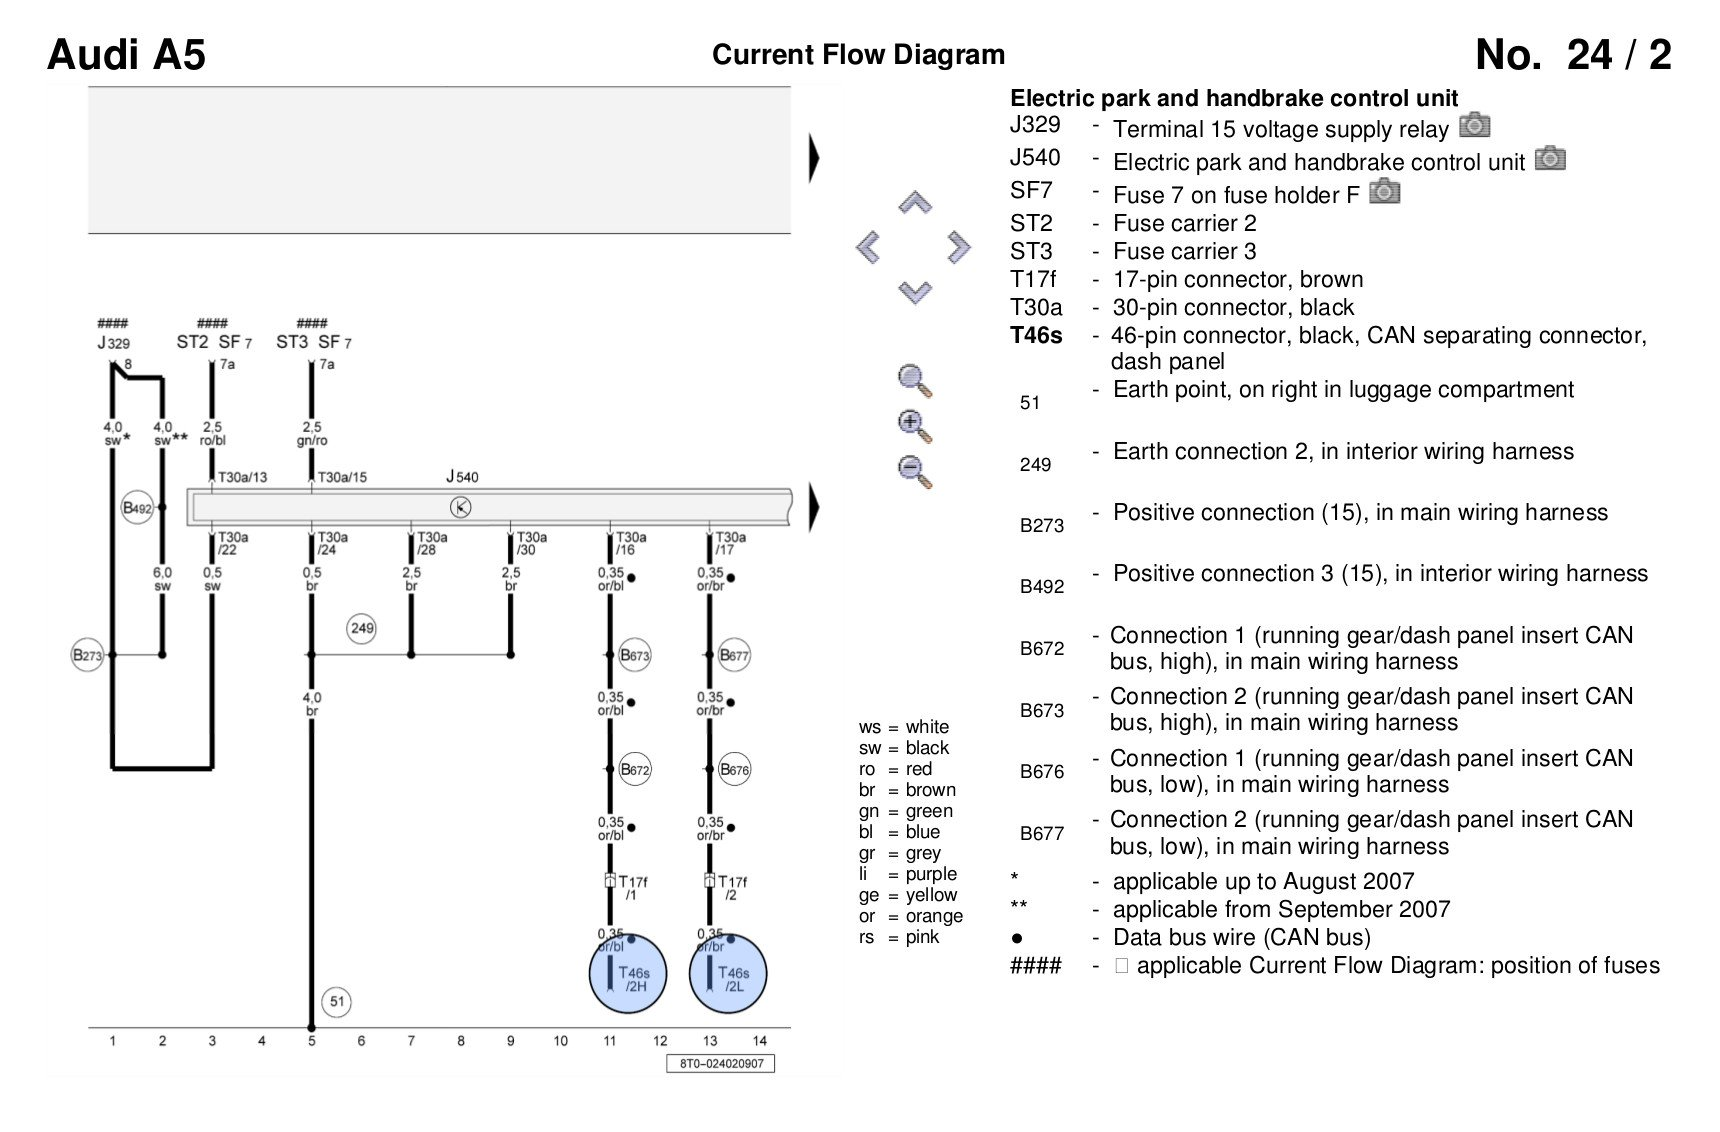 can wiring and coding for aps+ | audi a5 forum & audi s5 forum  a5oc